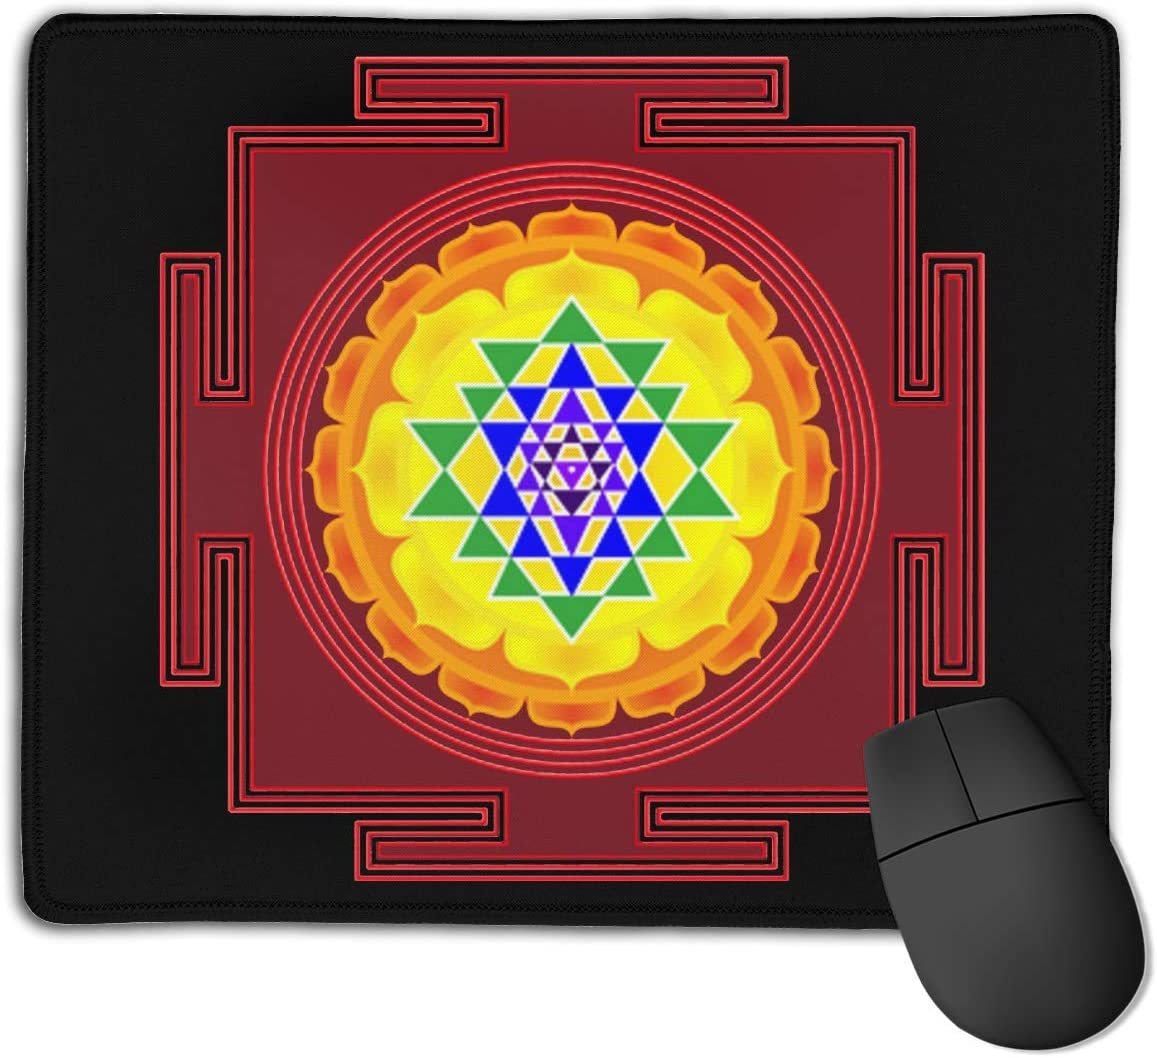 Lakshmi Ganesha Sri Yantra Mandala Mouse Pads Non-Slip Gaming Mouse Pad Mousepad for Working,Gaming and Other Entertainment